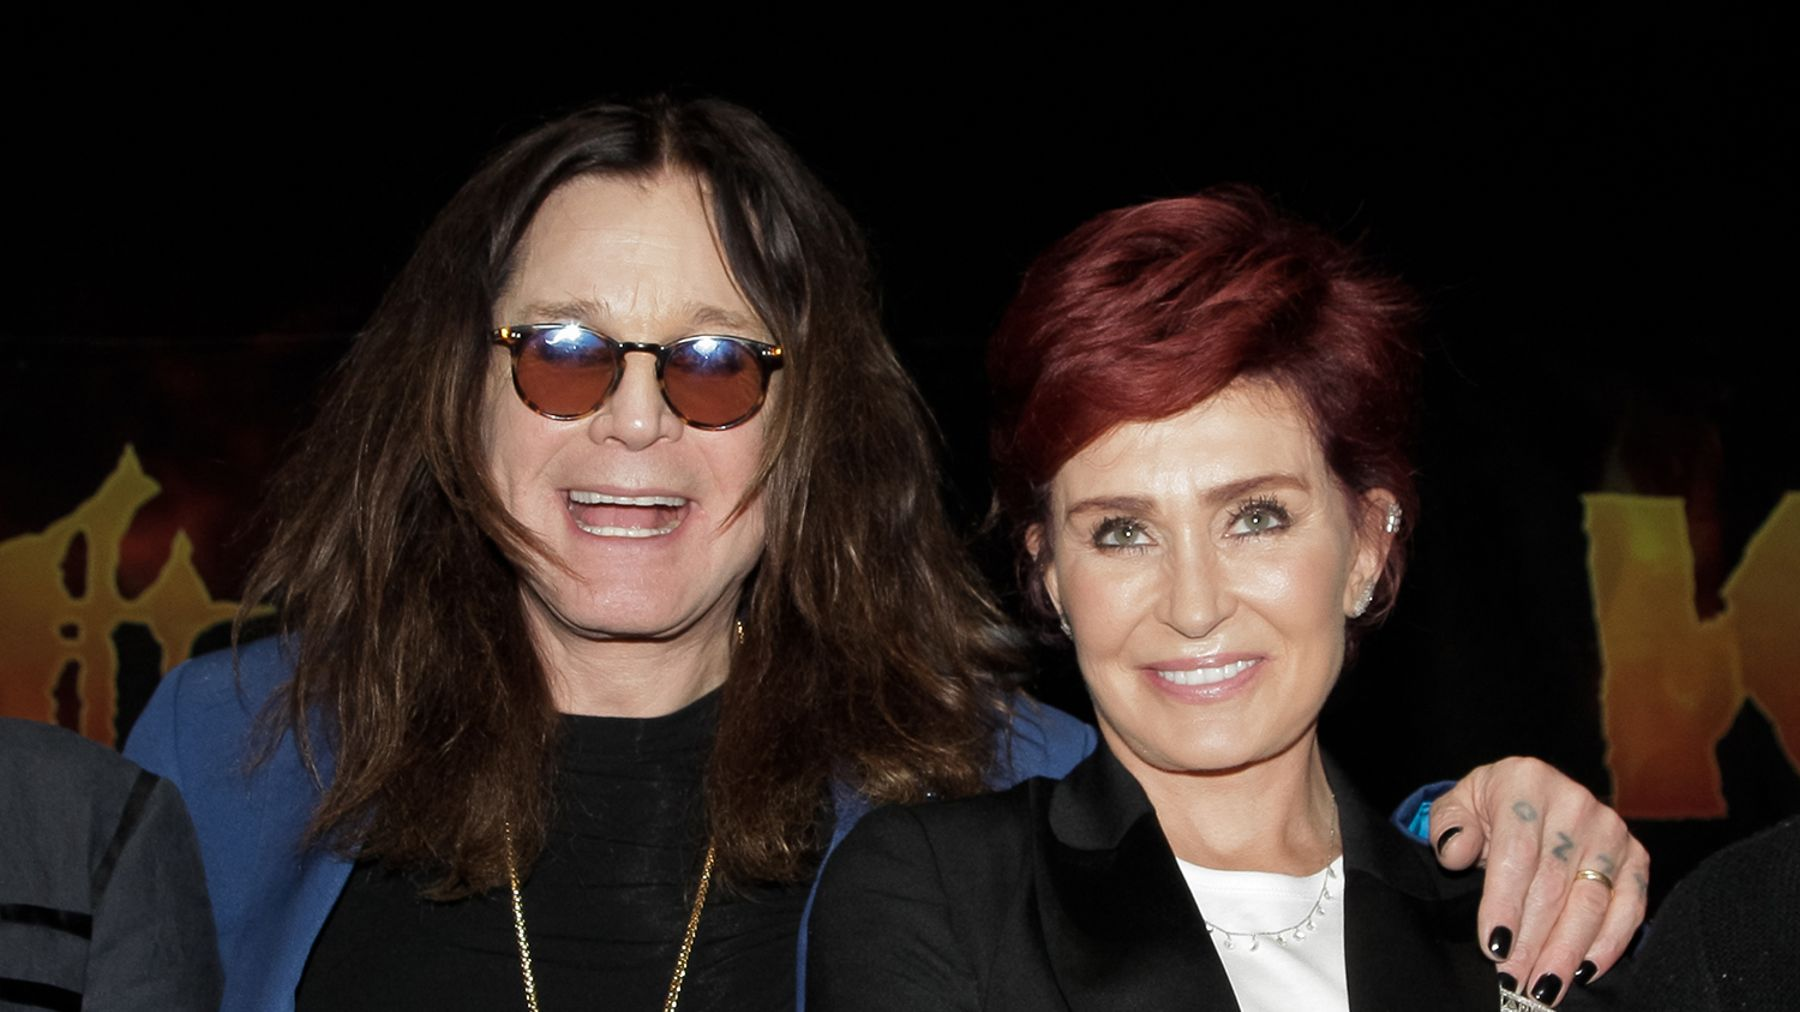 Sharon Osbourne has defended taking back cheating Ozzy after his